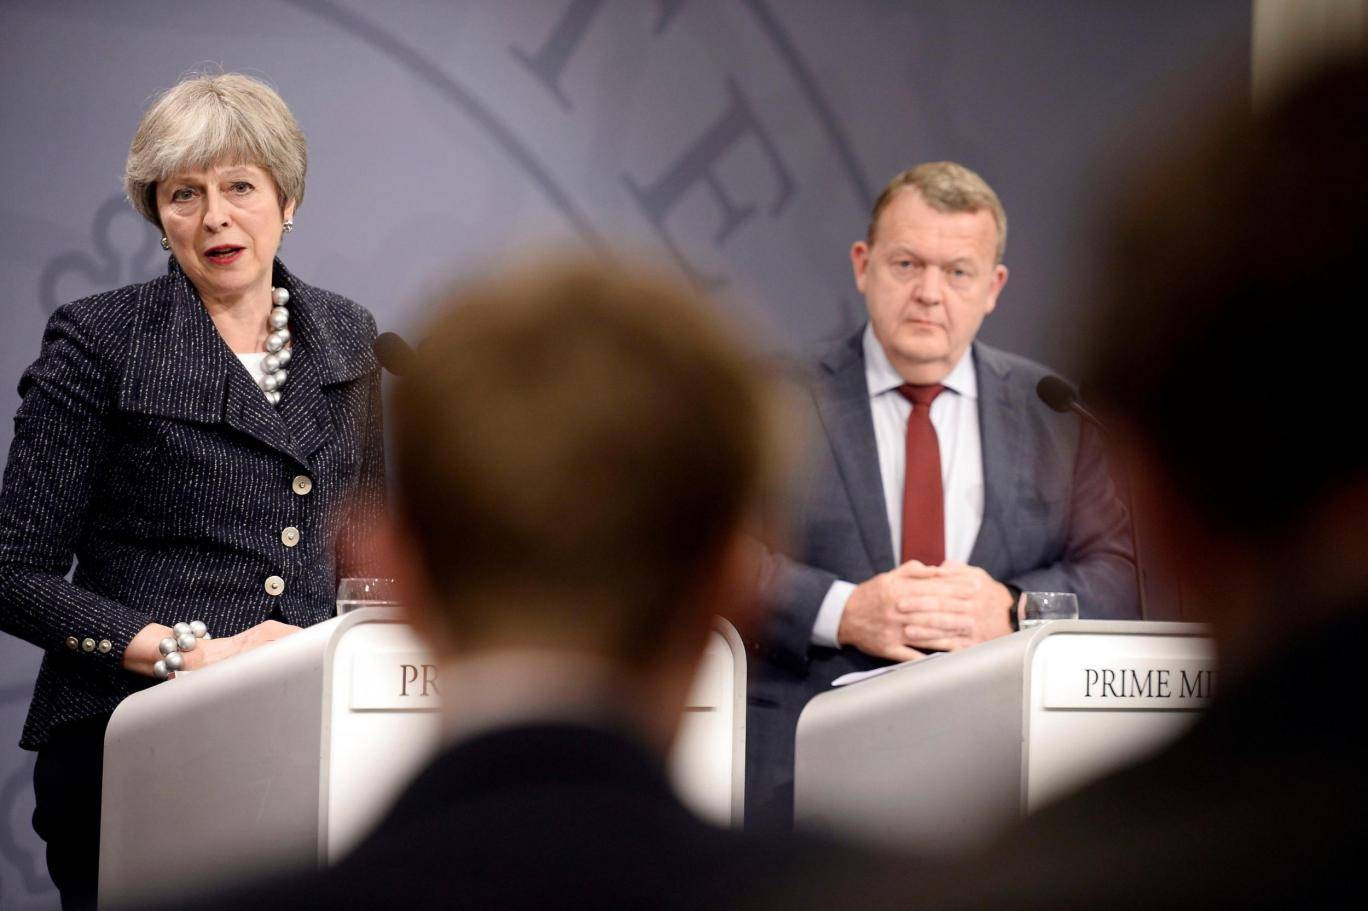 Denmark: Theresa May Brexit will cause more bureaucracy and has a 'price tag'